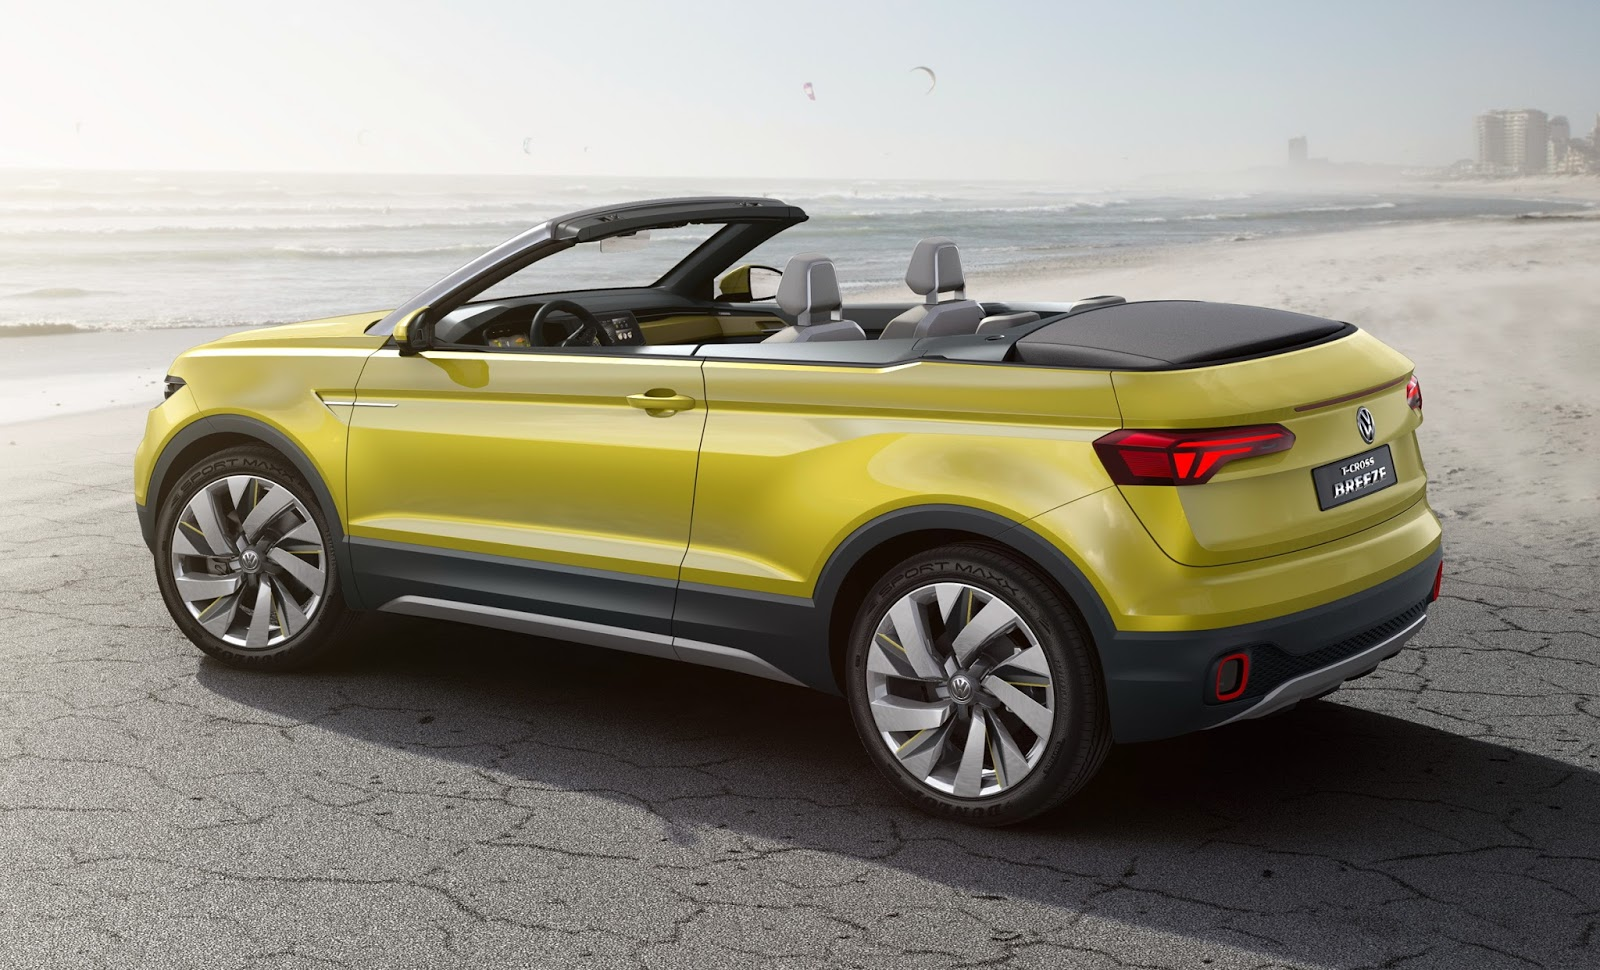 2019 Volkswagen CrossBlue Concept photo - 3